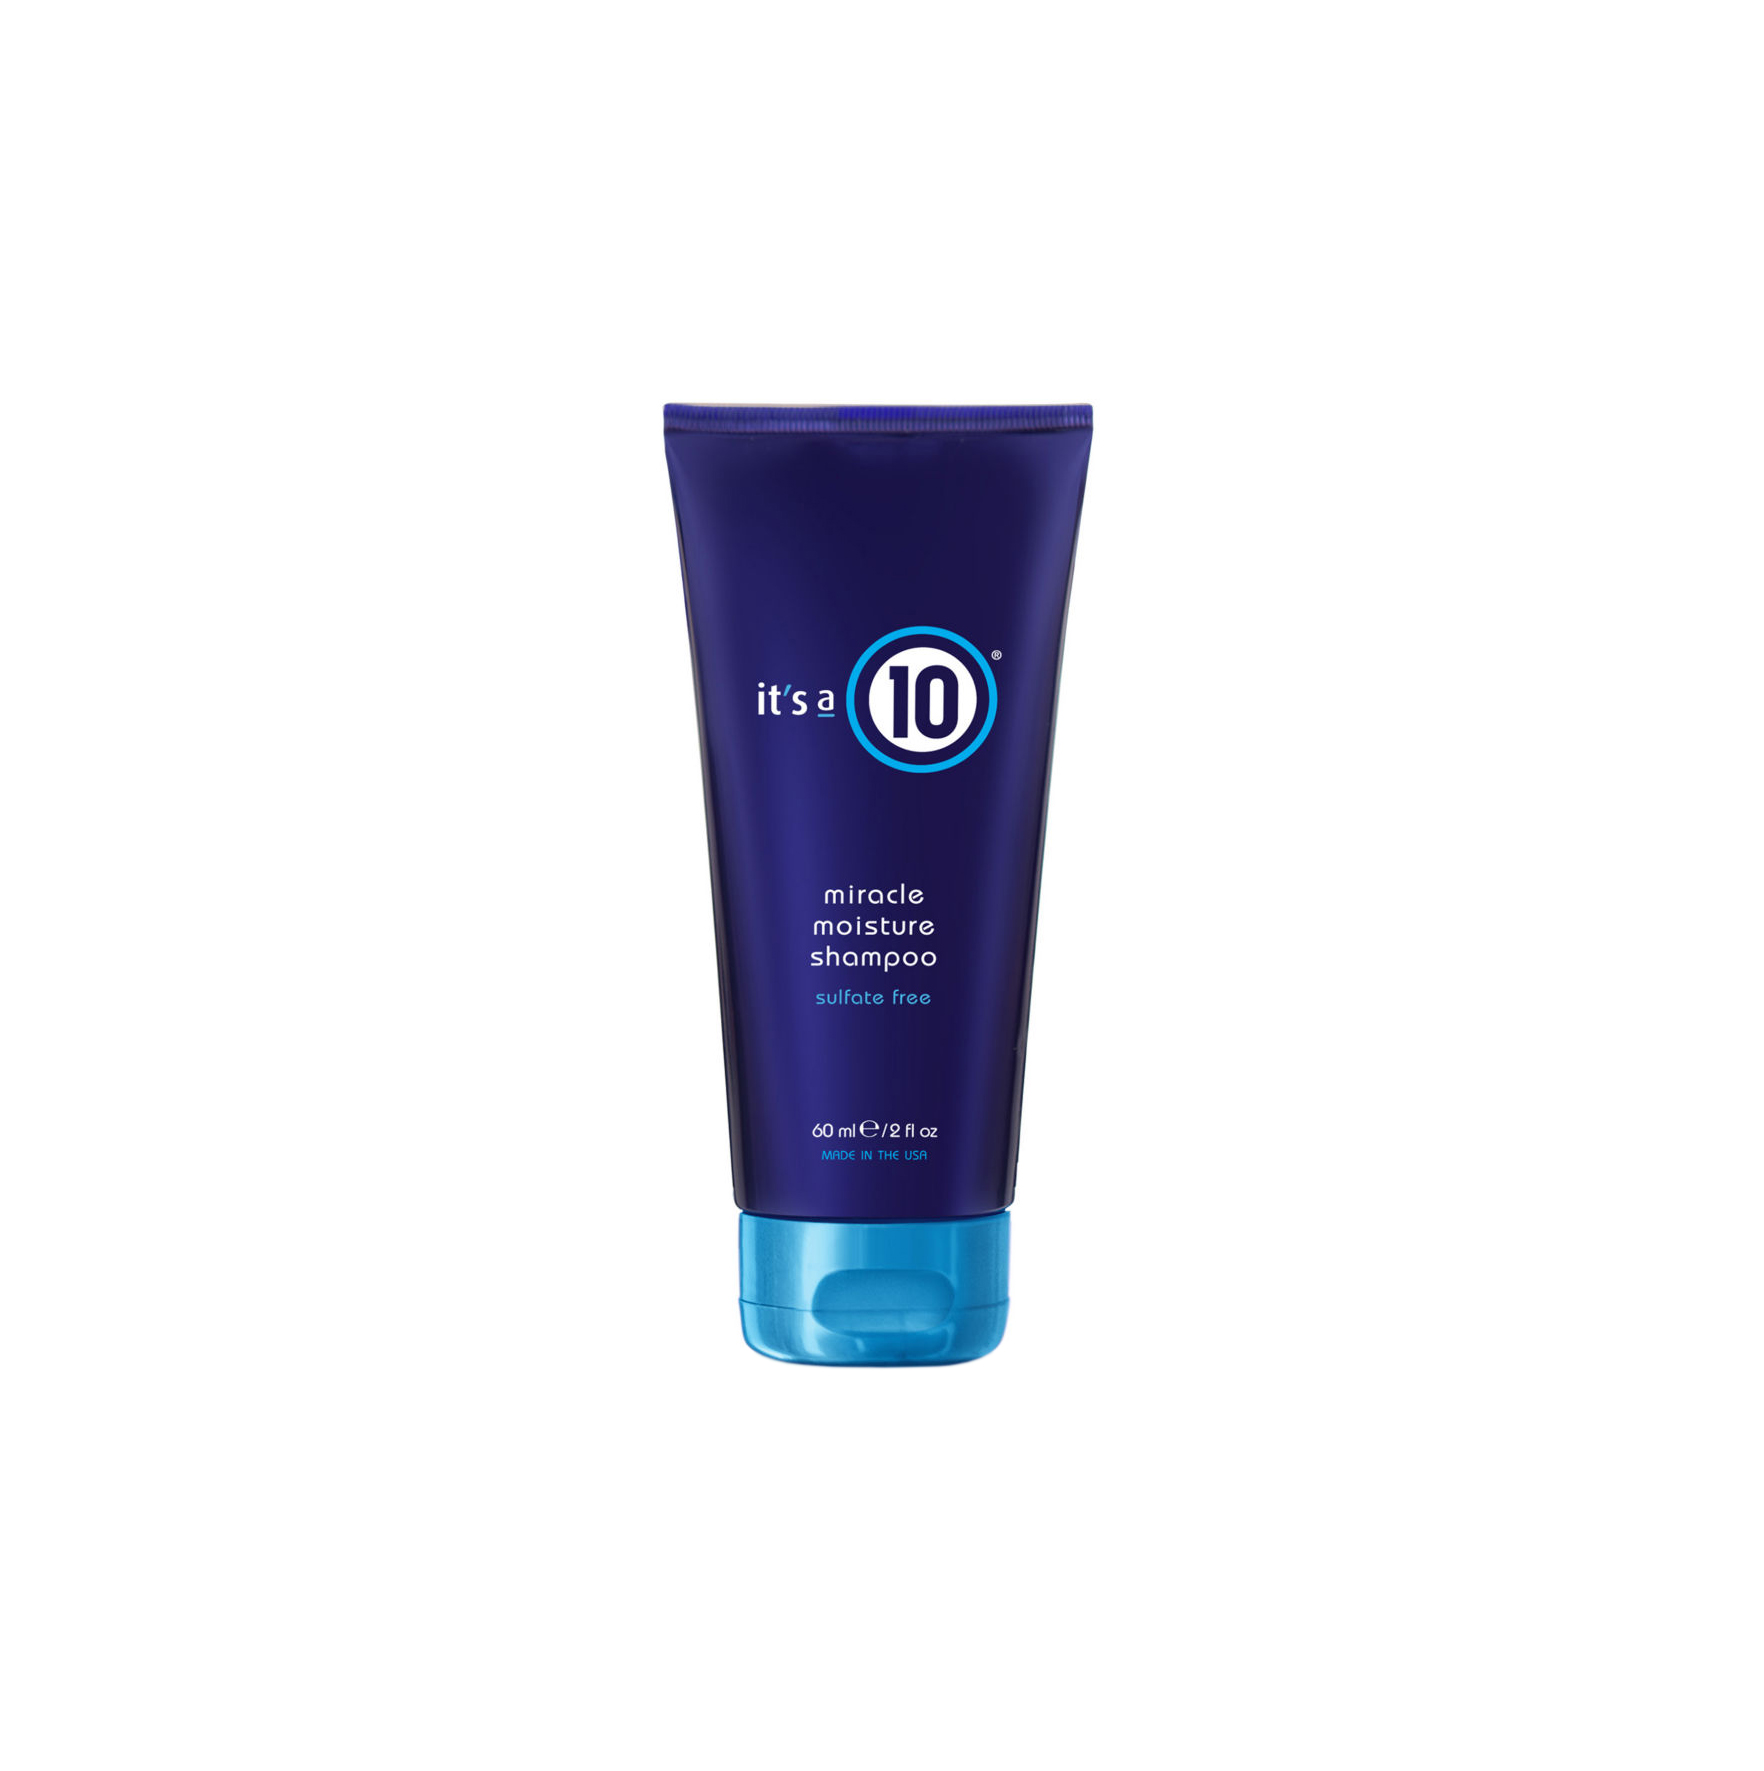 It's a 10 Miracle Moisture Shampoo and Miracle Daily Conditioner